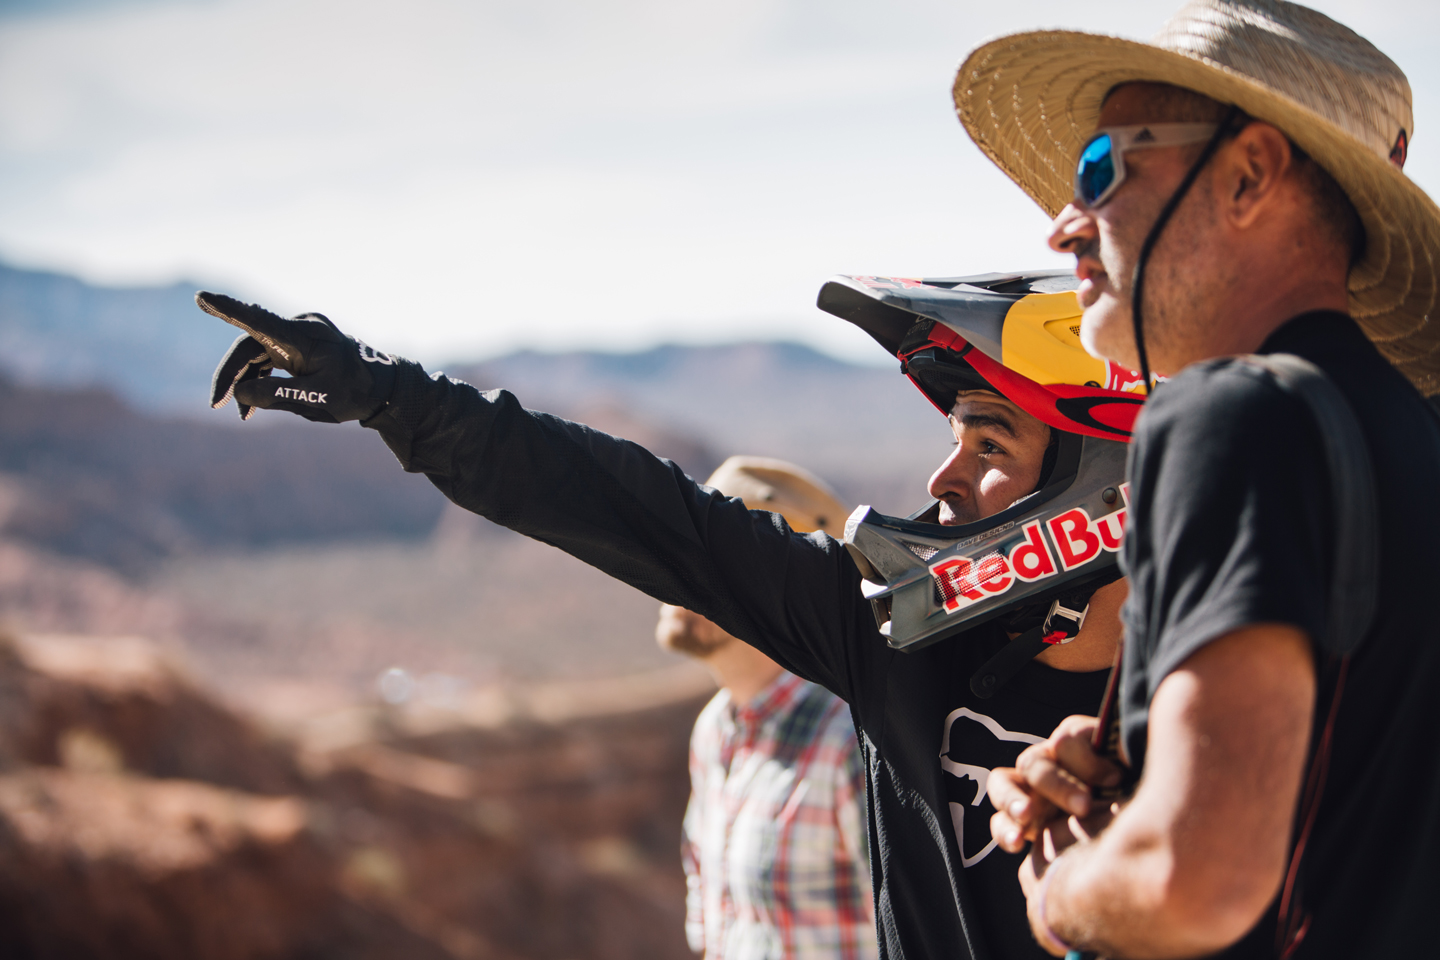 red-bull-rampage-18-andreu-lacondeguy-pointing-line.jpg